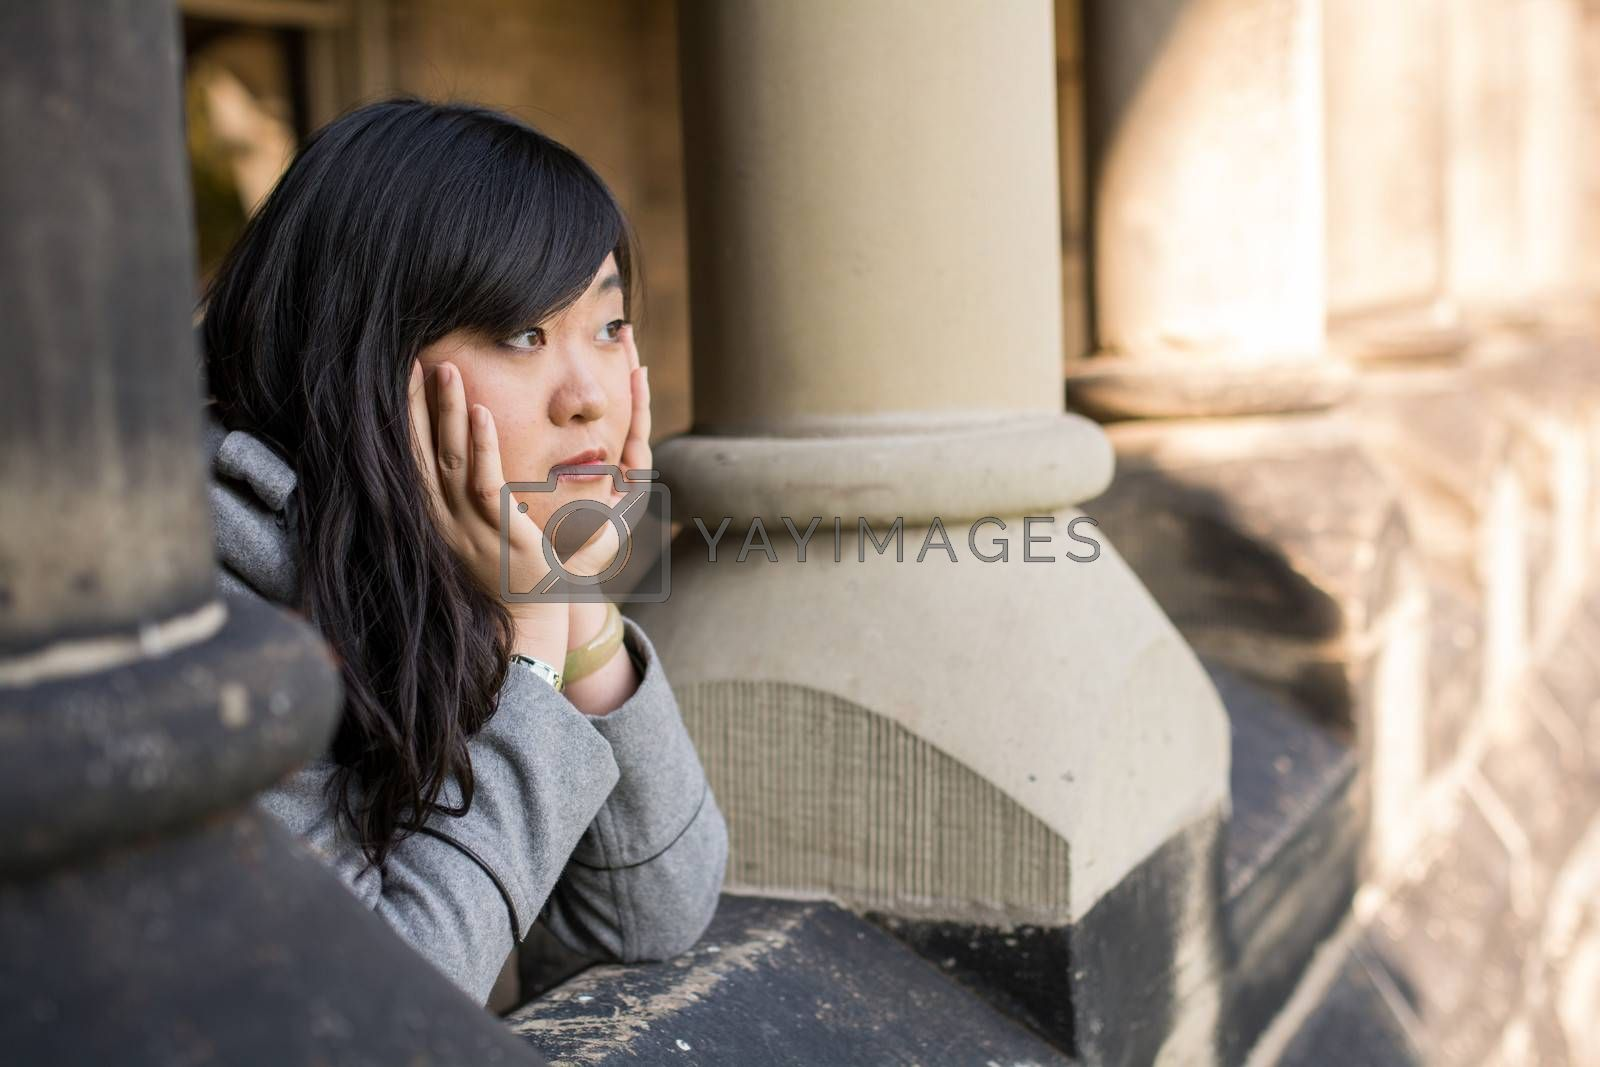 young woman leaning forward next to stone pillars